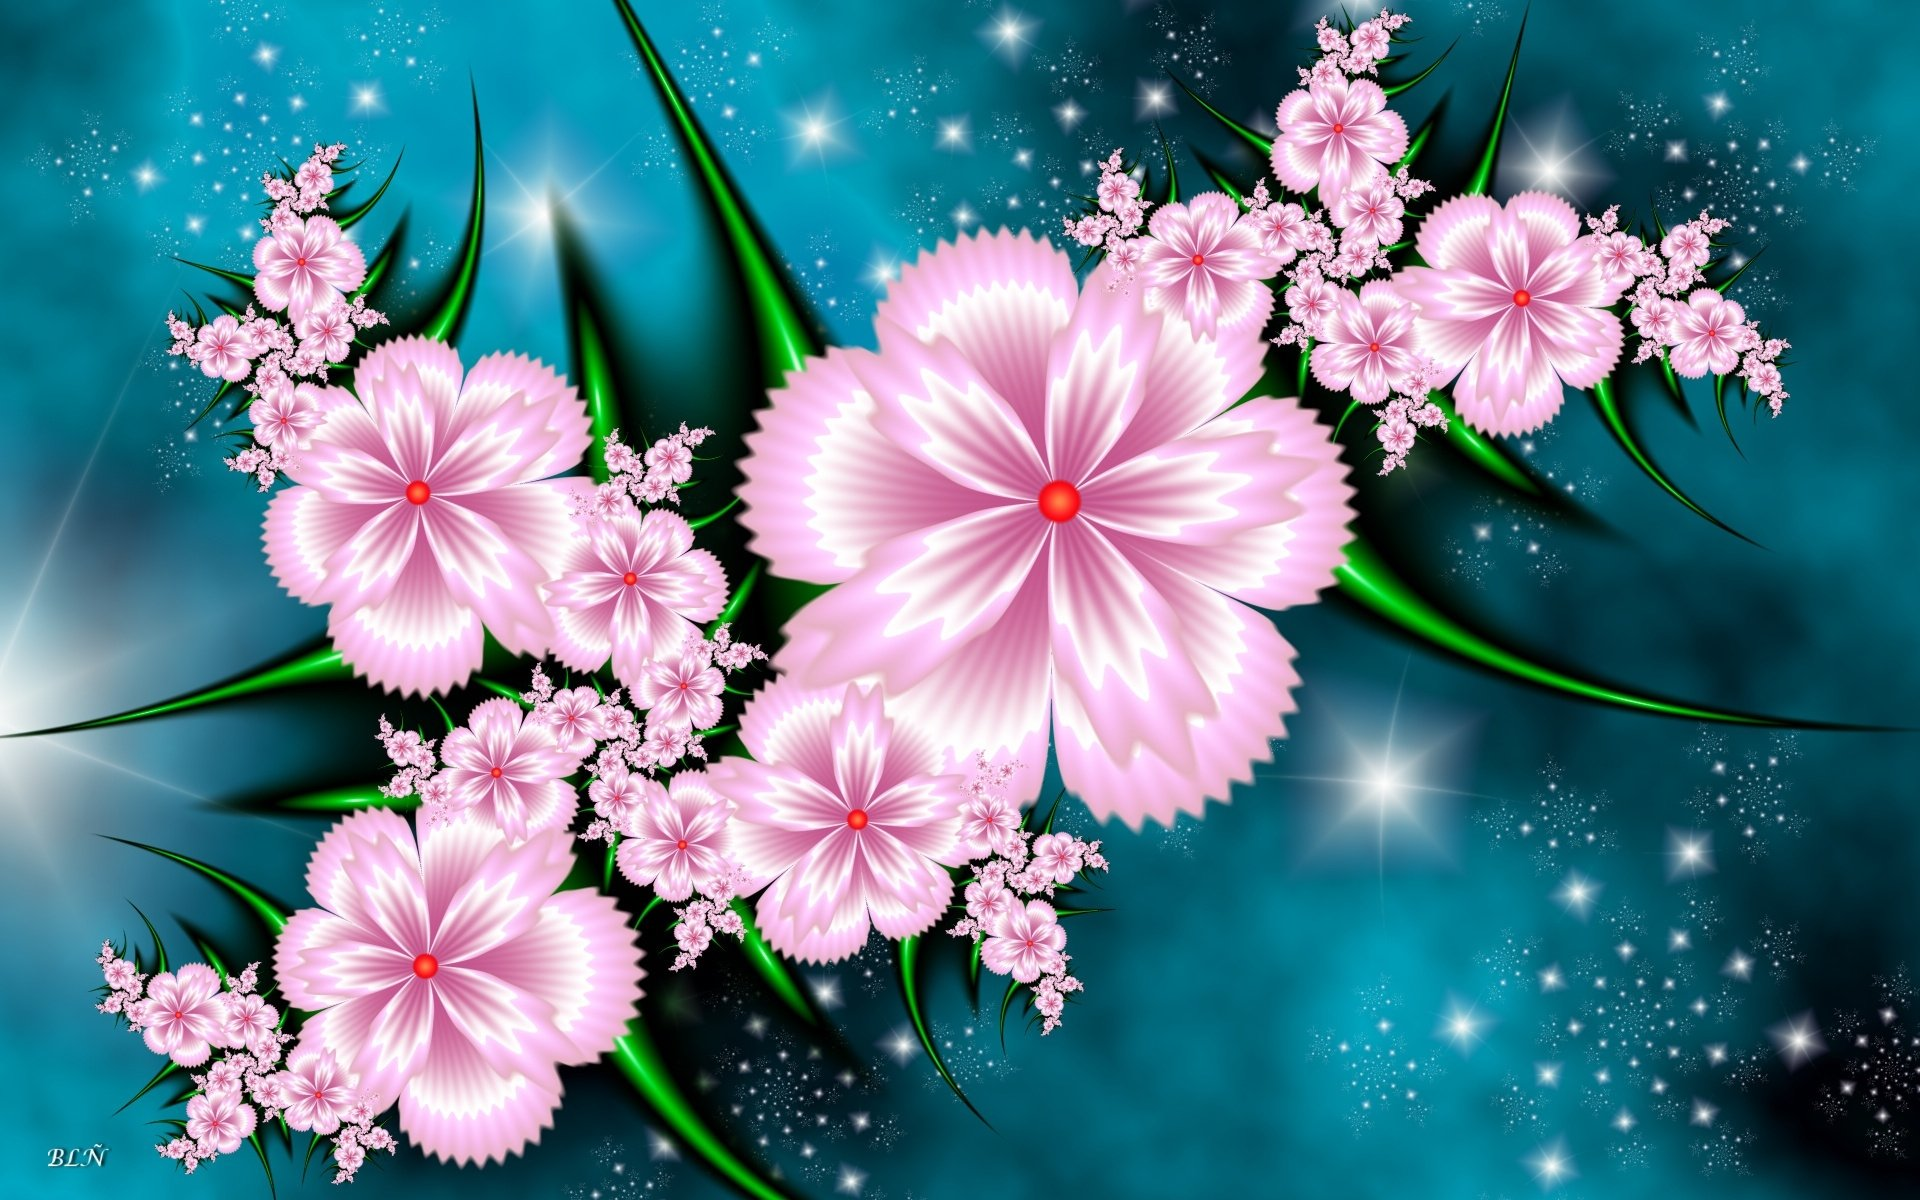 Wallpapers ID:824779